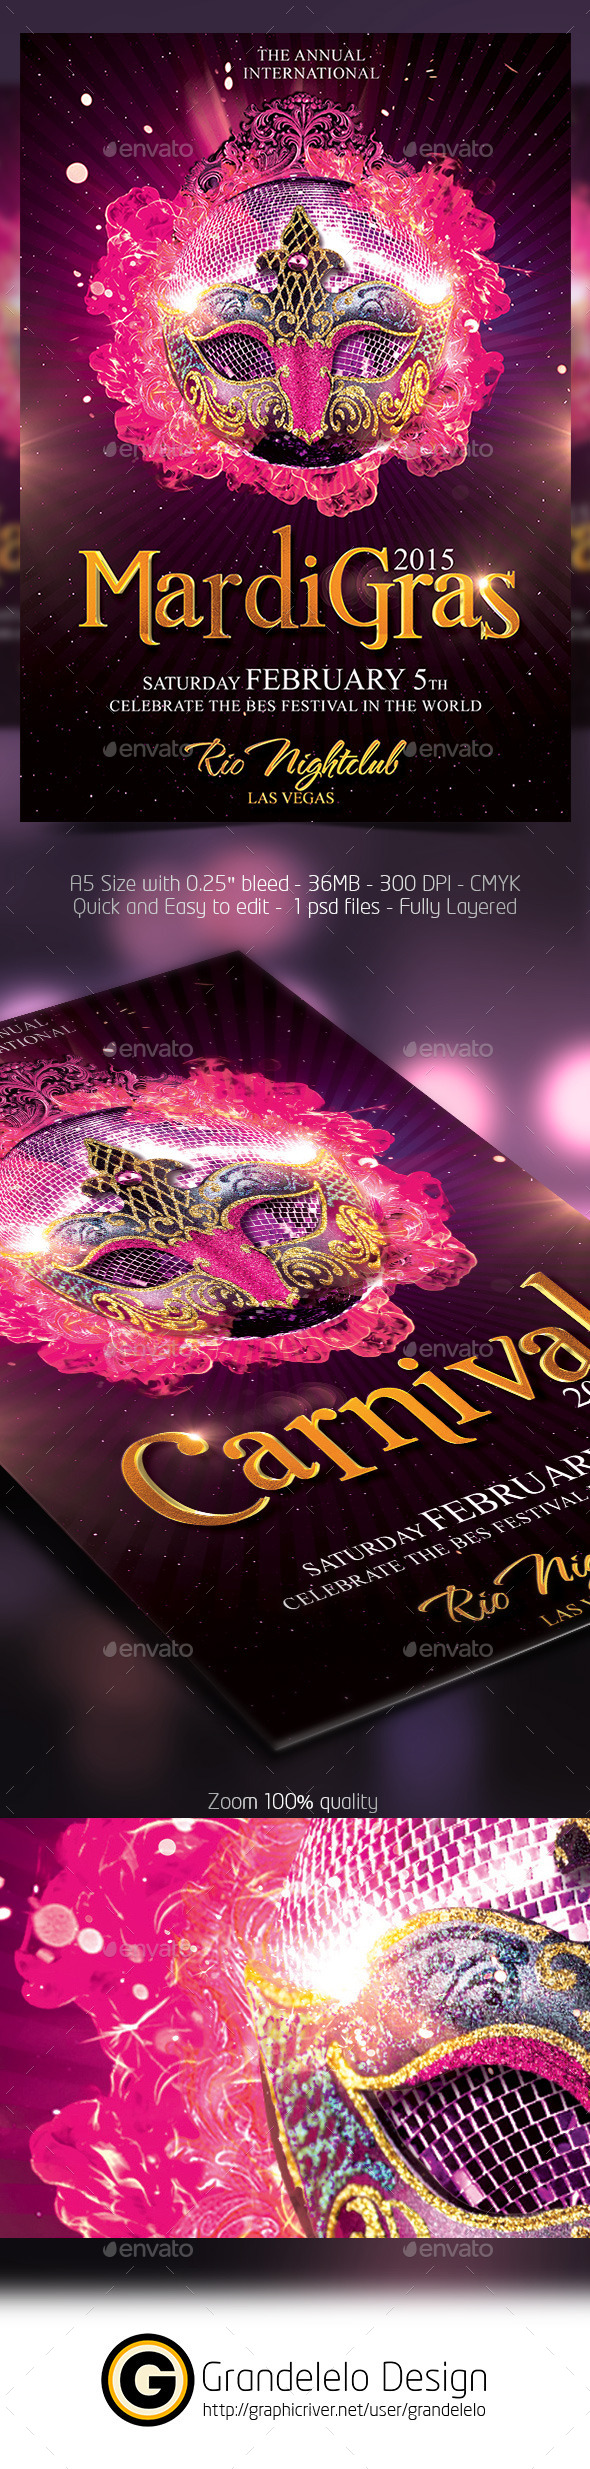 GraphicRiver The Carnival 2015 Flyer Template 9917972